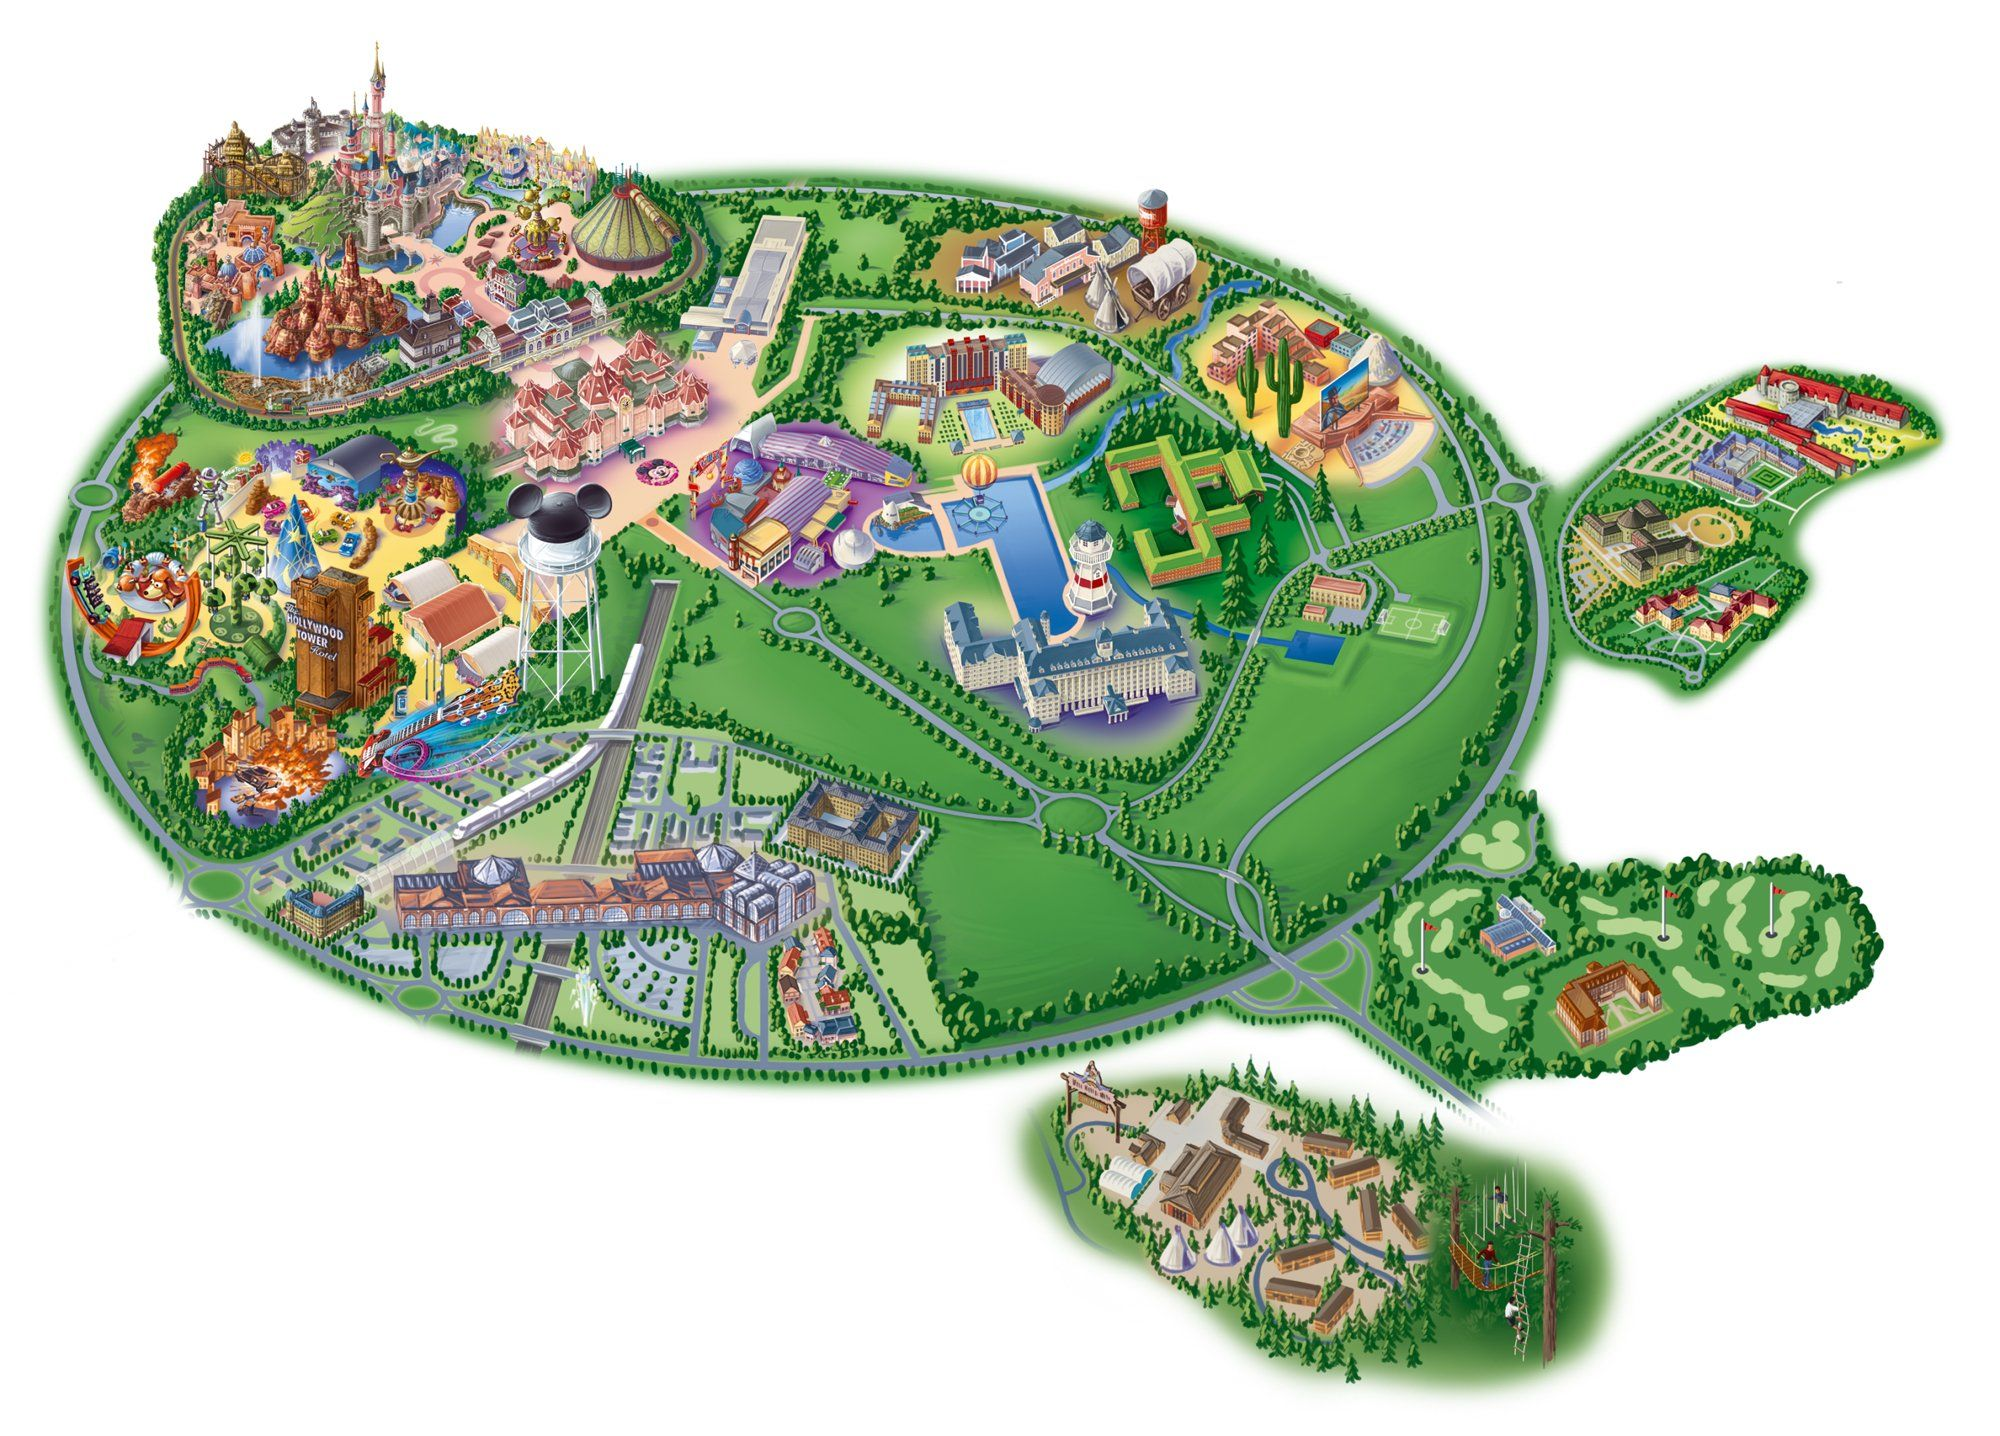 Map Of Paris And Attractions%0A Printable  u     PDF maps of the Disneyland Resort with detailed map of  Disneyland Paris  u     Walt Disney Studios attractions  u     lands